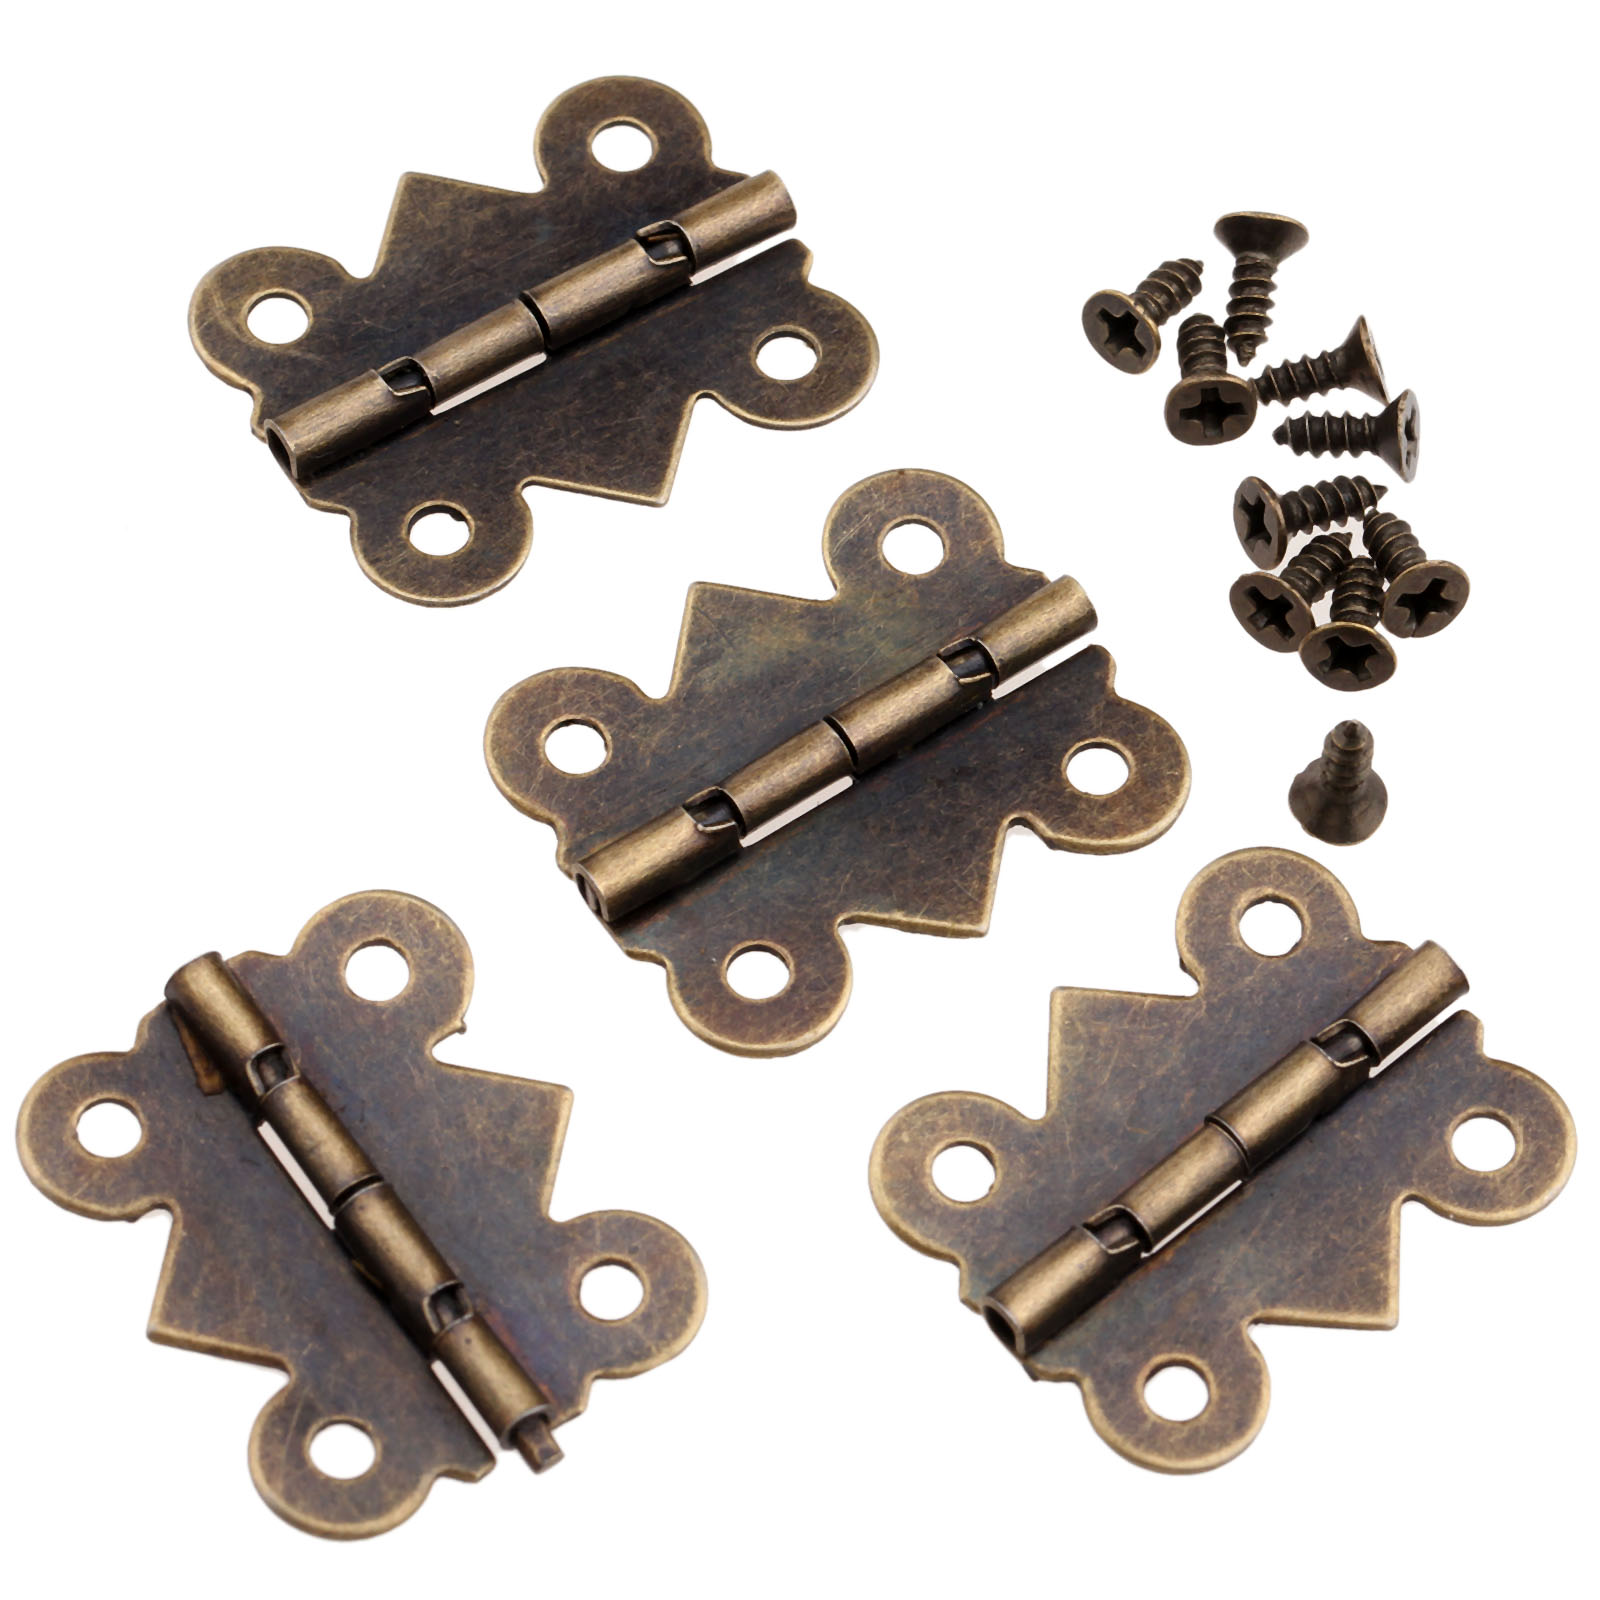 vintage cabinet hinges. 20Pc 25x20mm Antique Bronze Kitchen Cabinet Hinge Furniture Accessories Vintage Jewelry Wooden Box Hinges Fittings For Furniture-in From Home